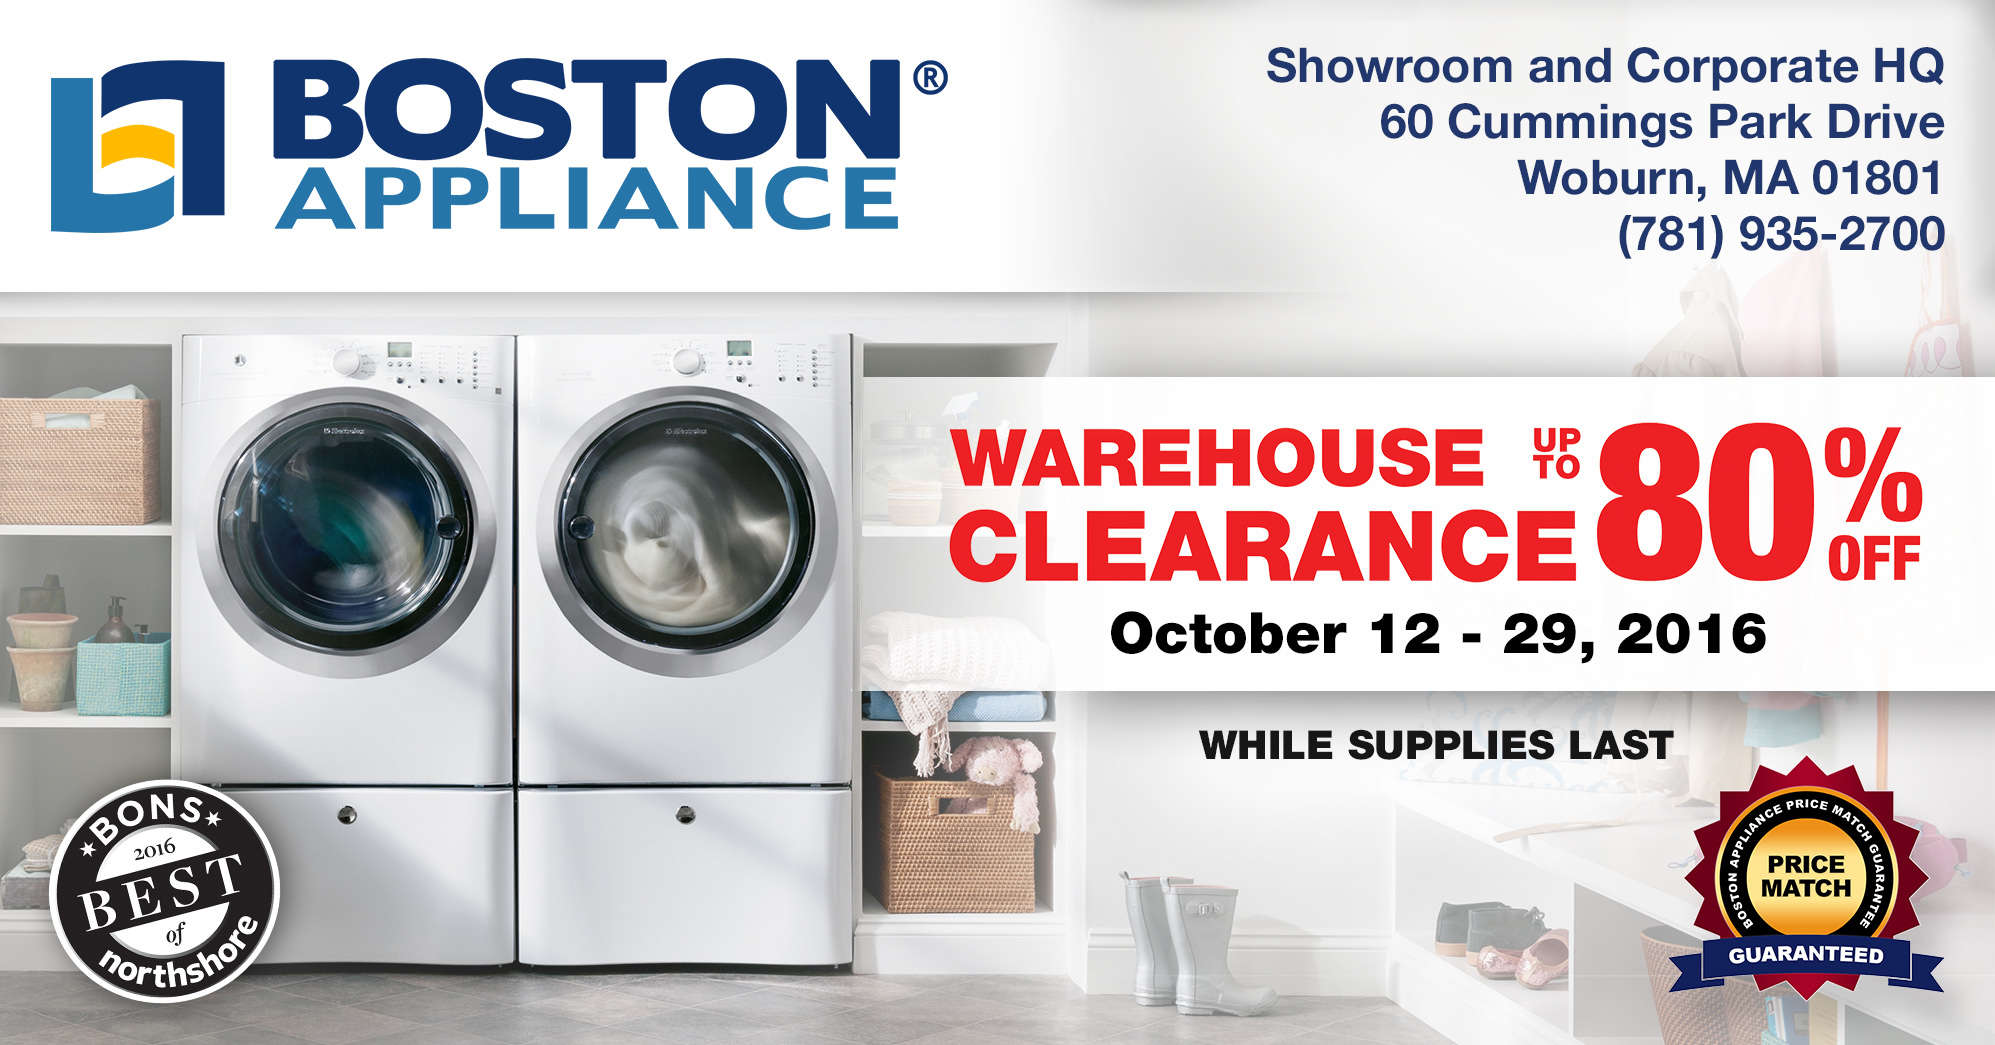 Boston Appliance Warehouse Clearance Sale